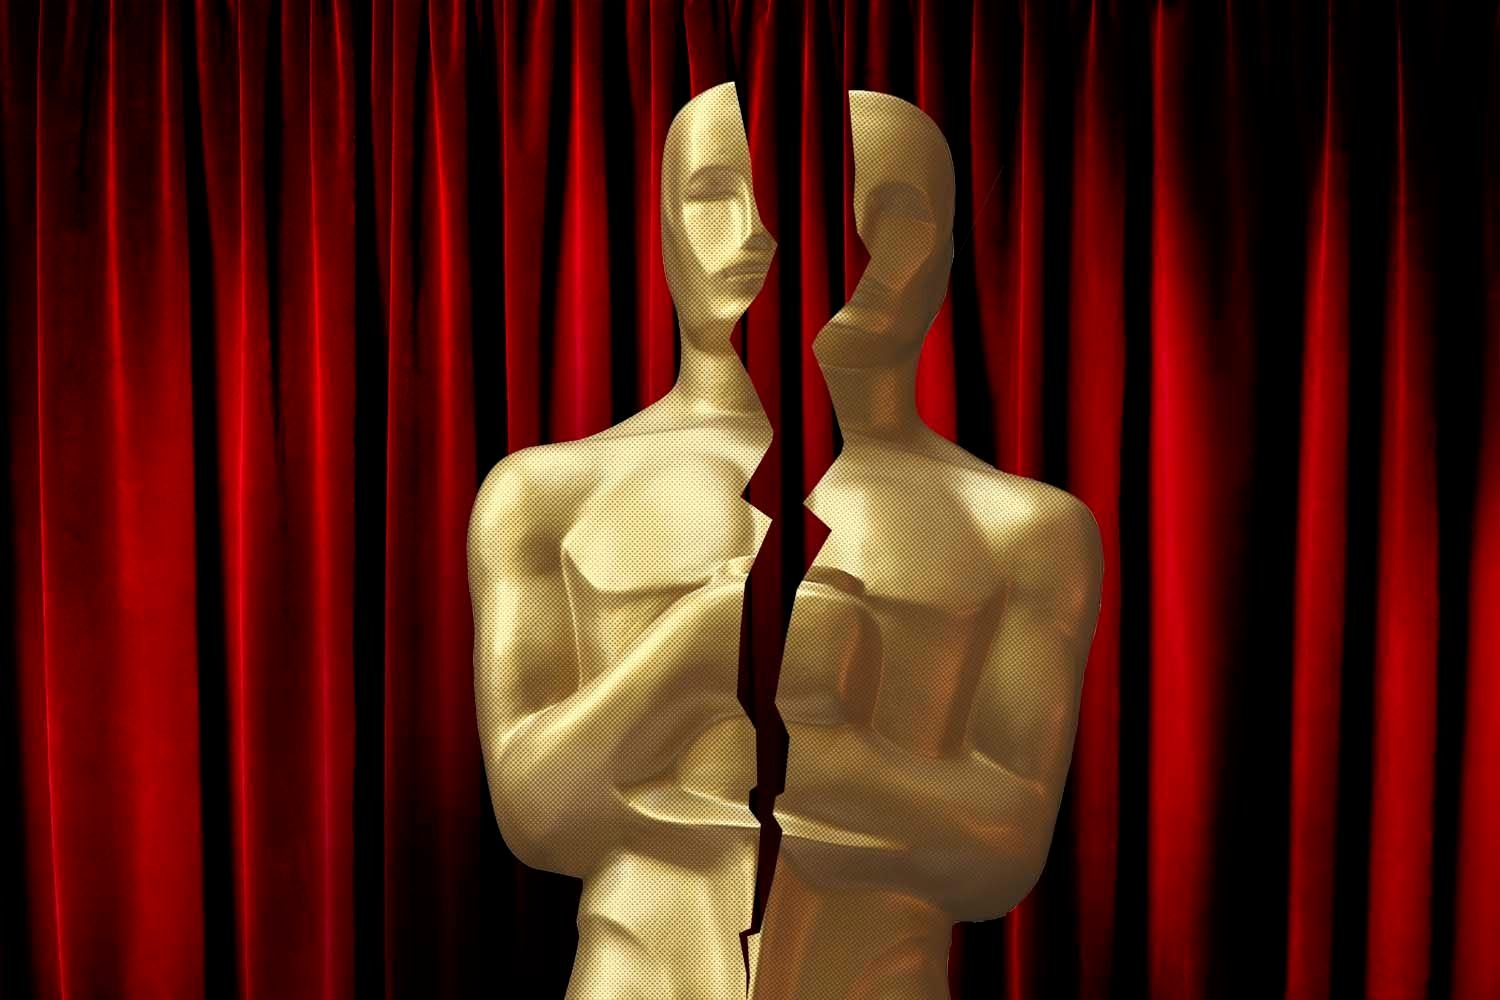 'There'll Be A Revolt': A Change To The Oscars Broadcast Has Hollywood Up In